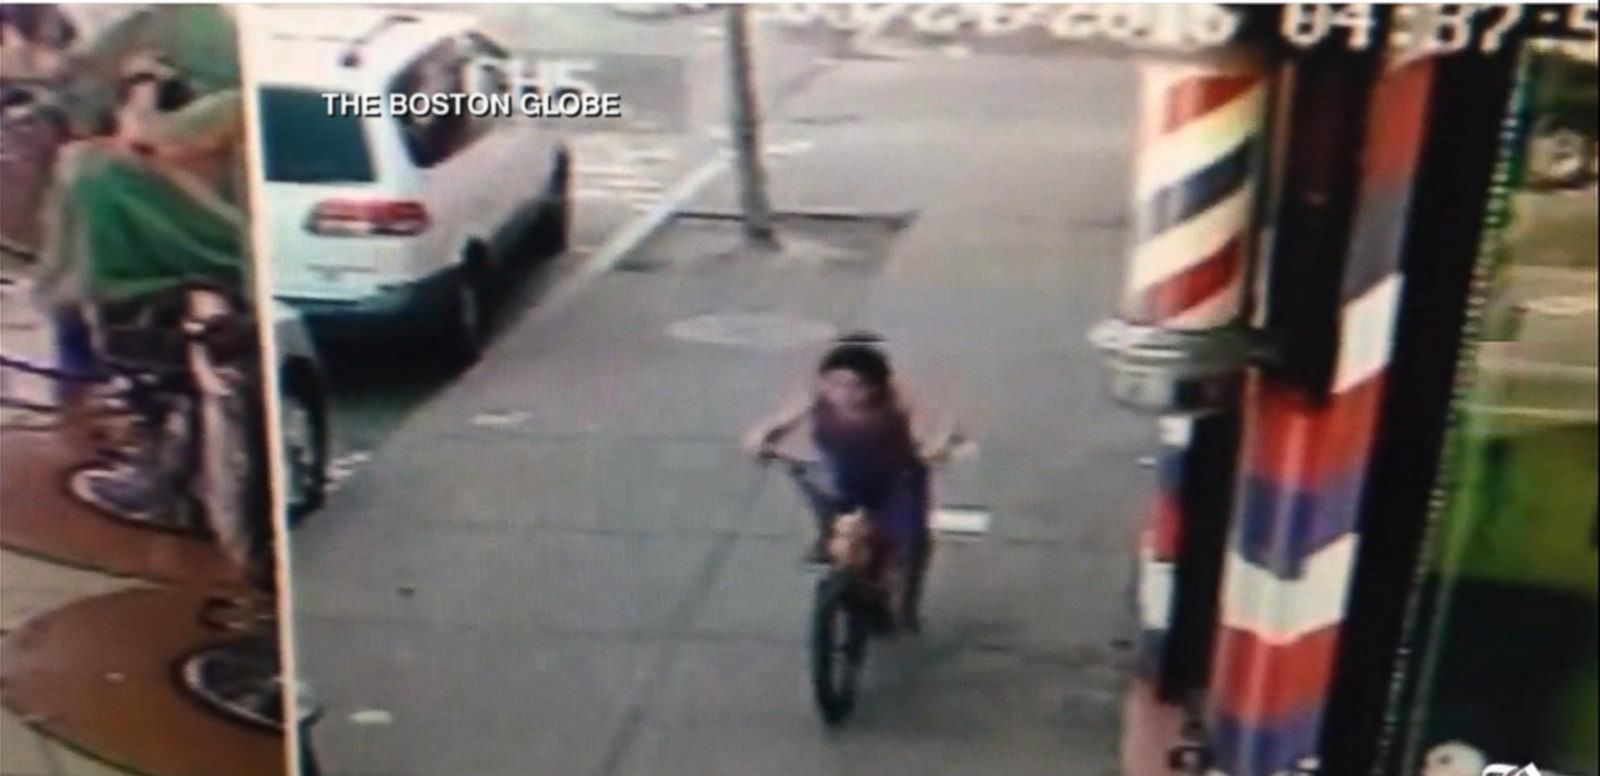 VIDEO: Boy, 7, Shot Riding His Bike in Boston